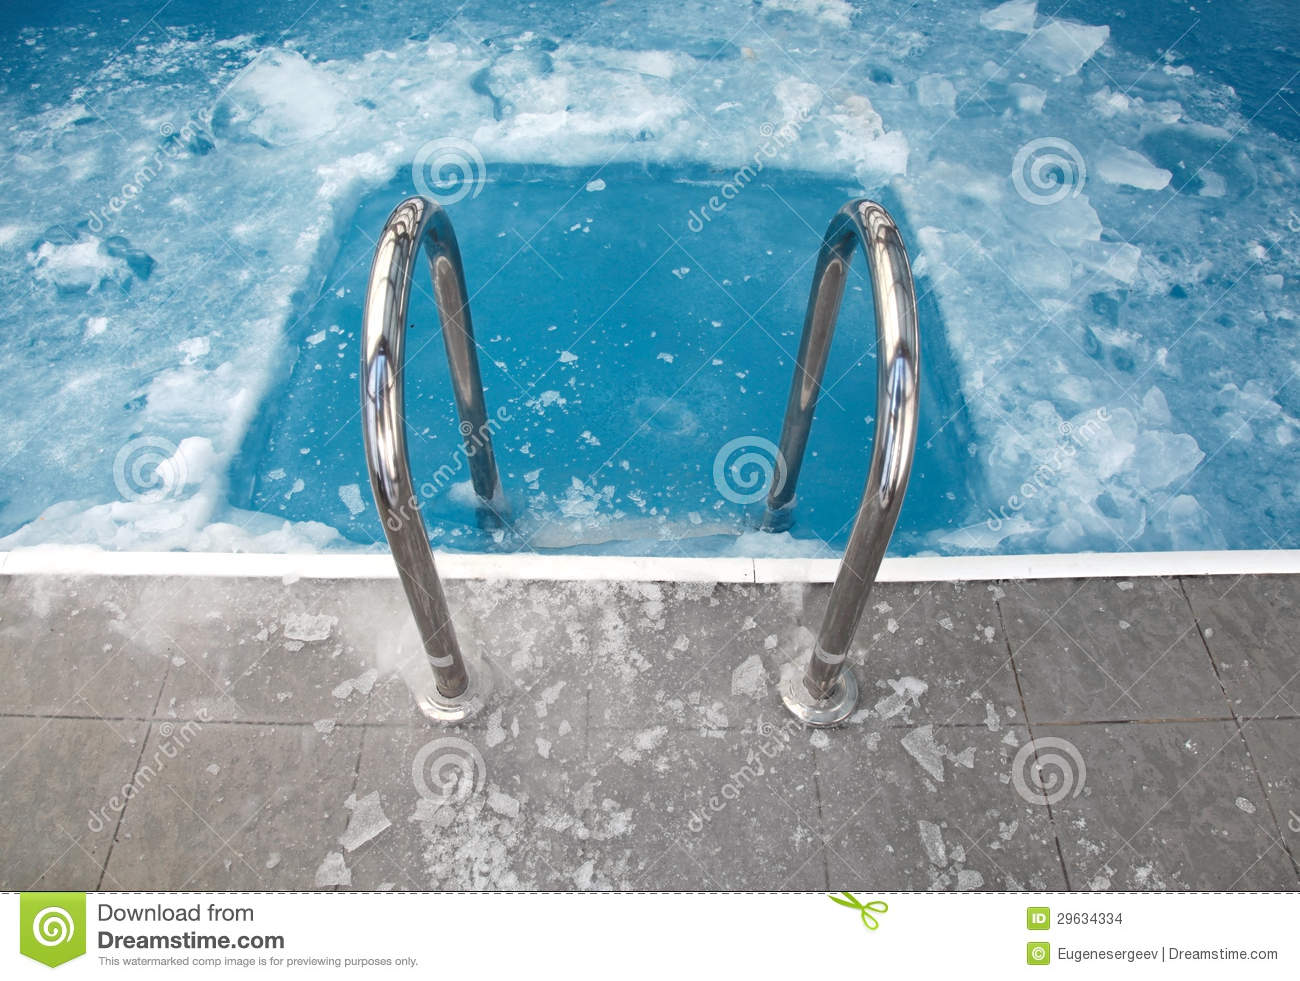 Gfk Pool Winterfest Machen Steps In The Frozen Blue Swimming Pool Stock Images